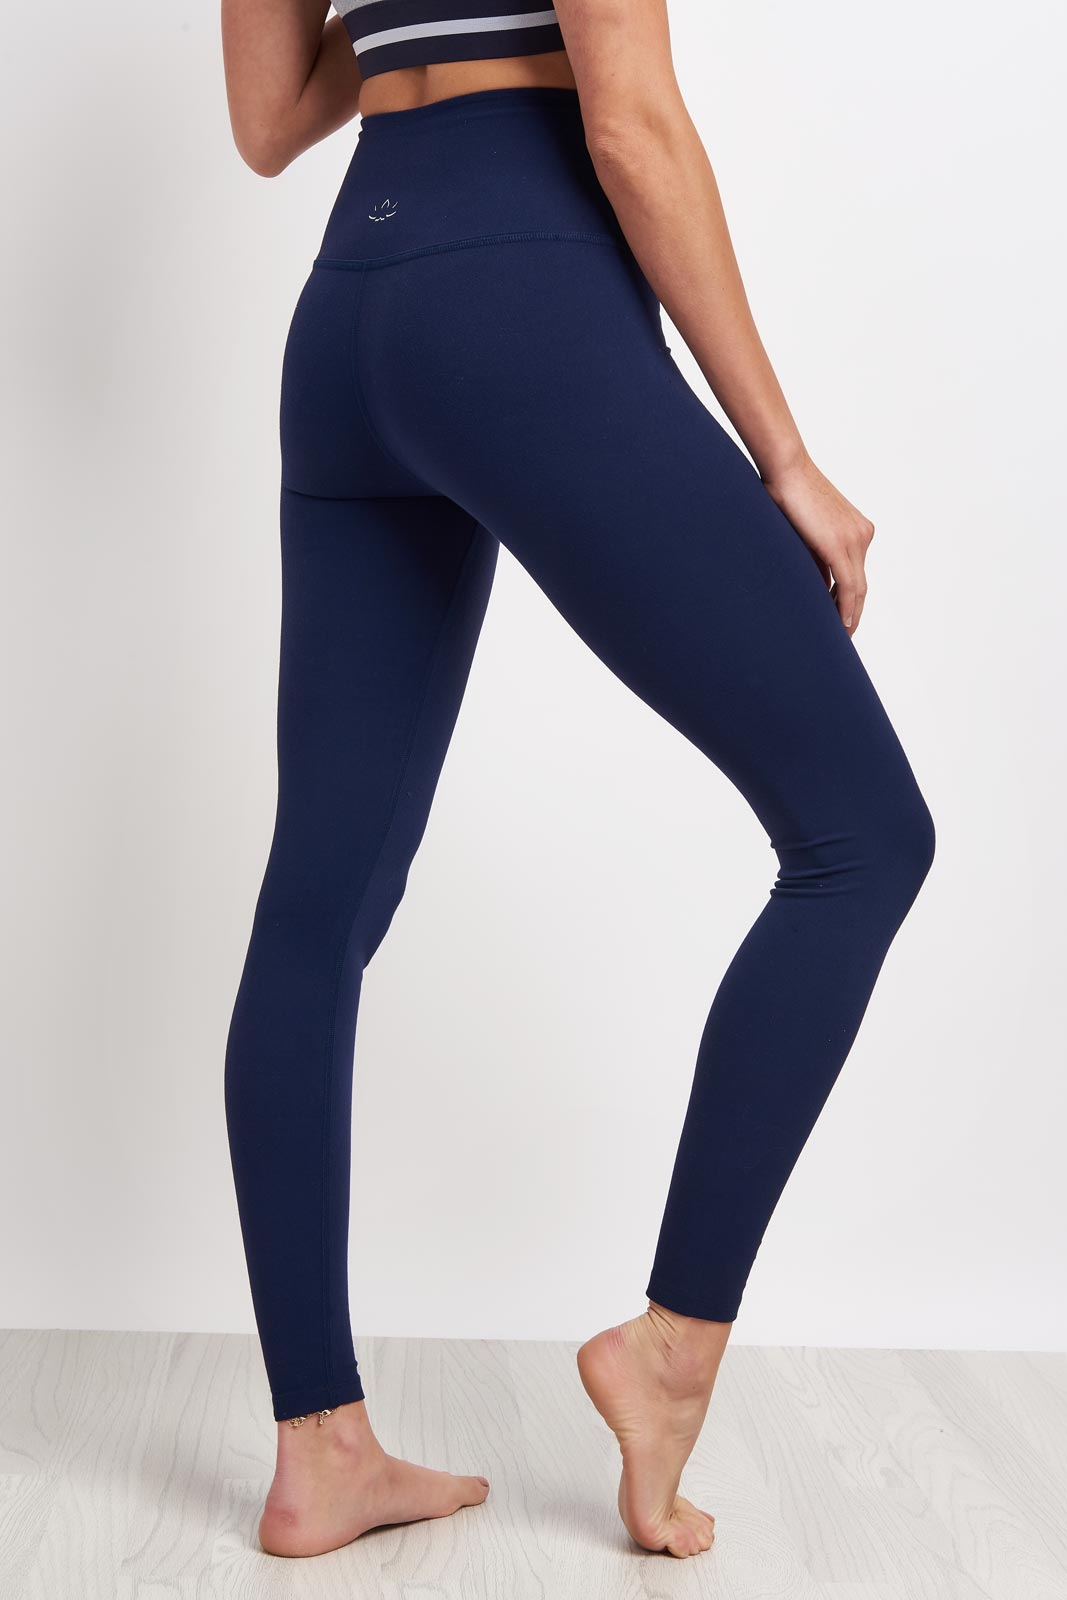 Beyond Yoga High Waist Legging - Valor Navy image 2 - The Sports Edit